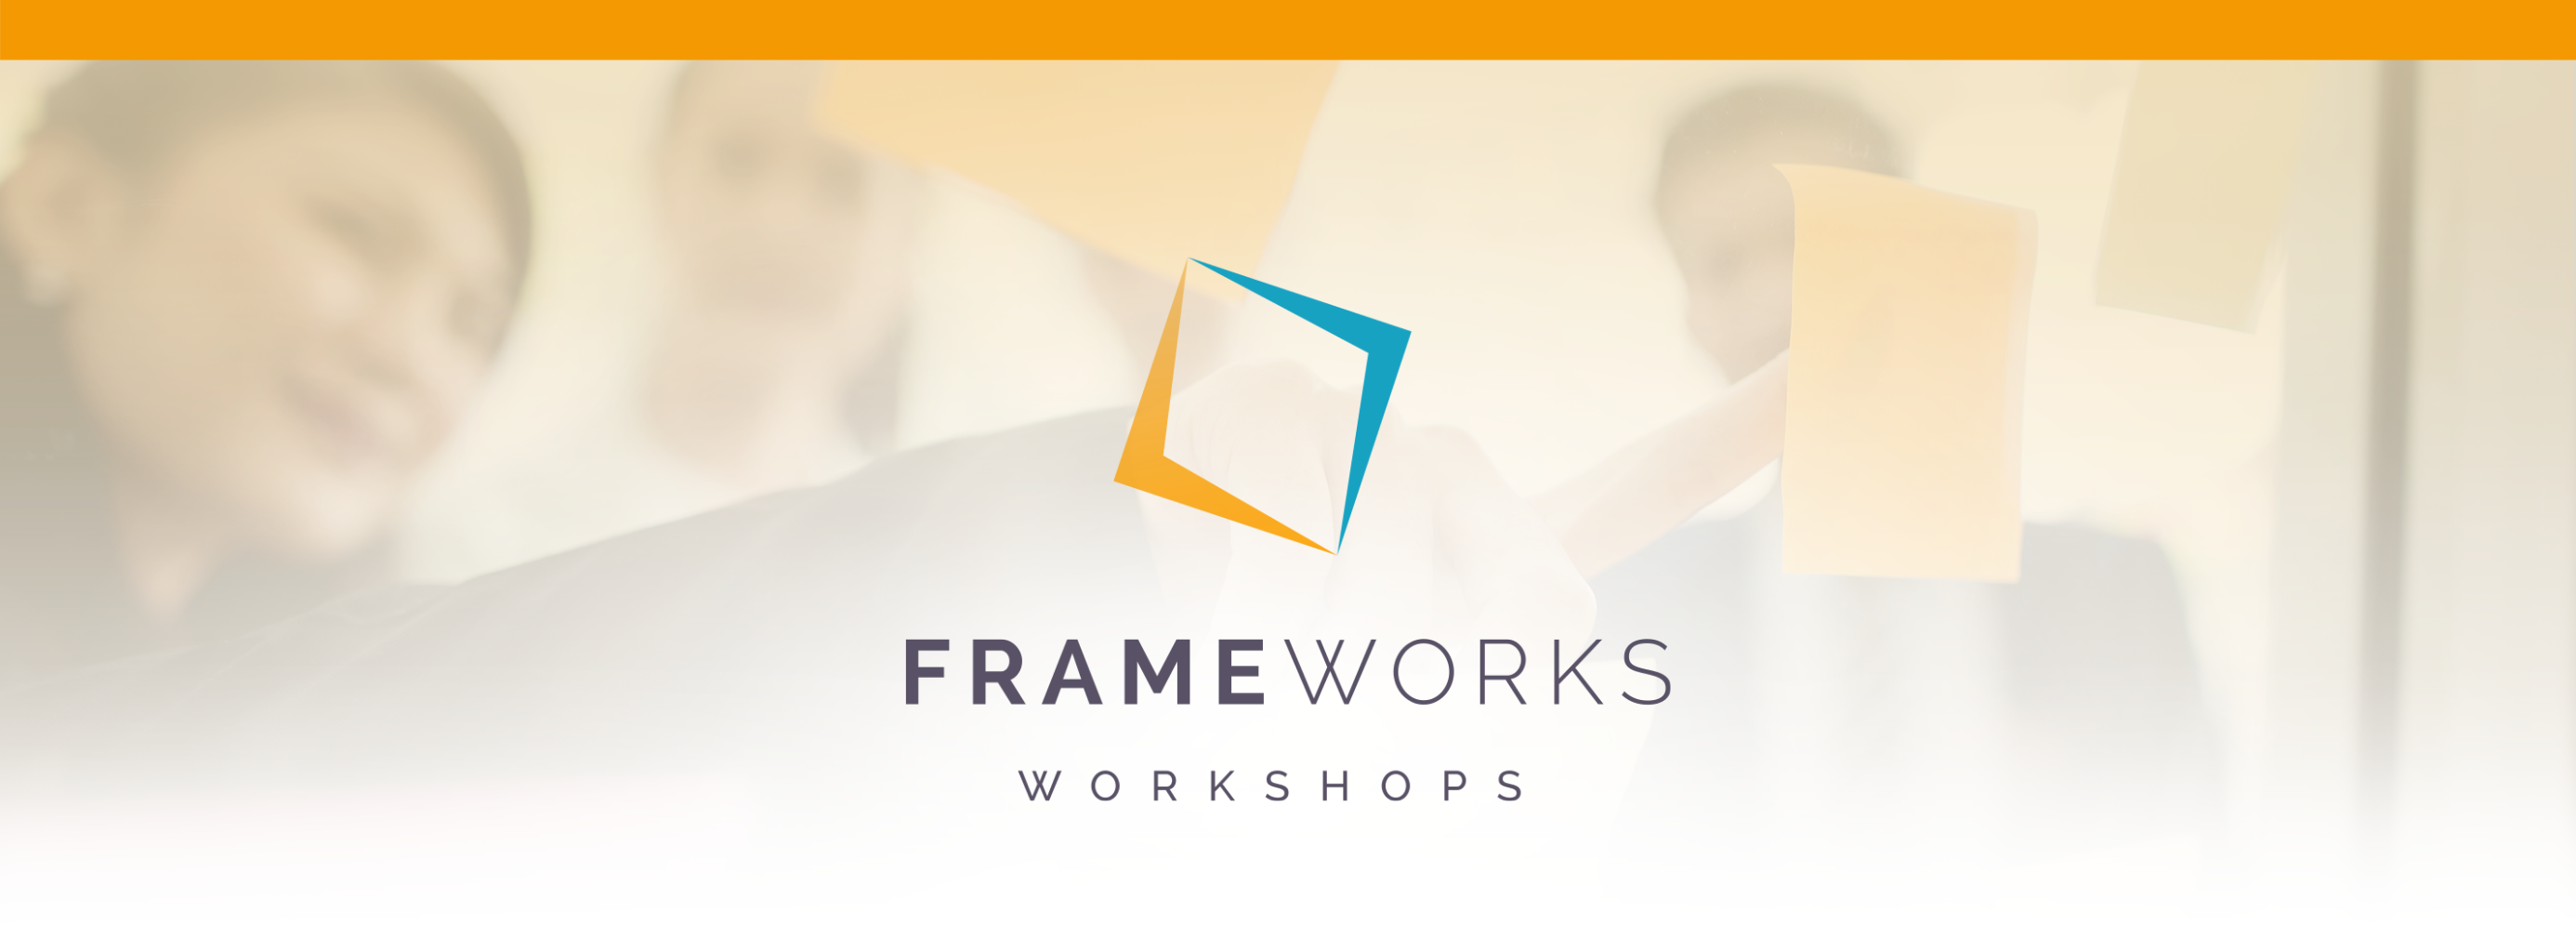 Frameworks Workshops